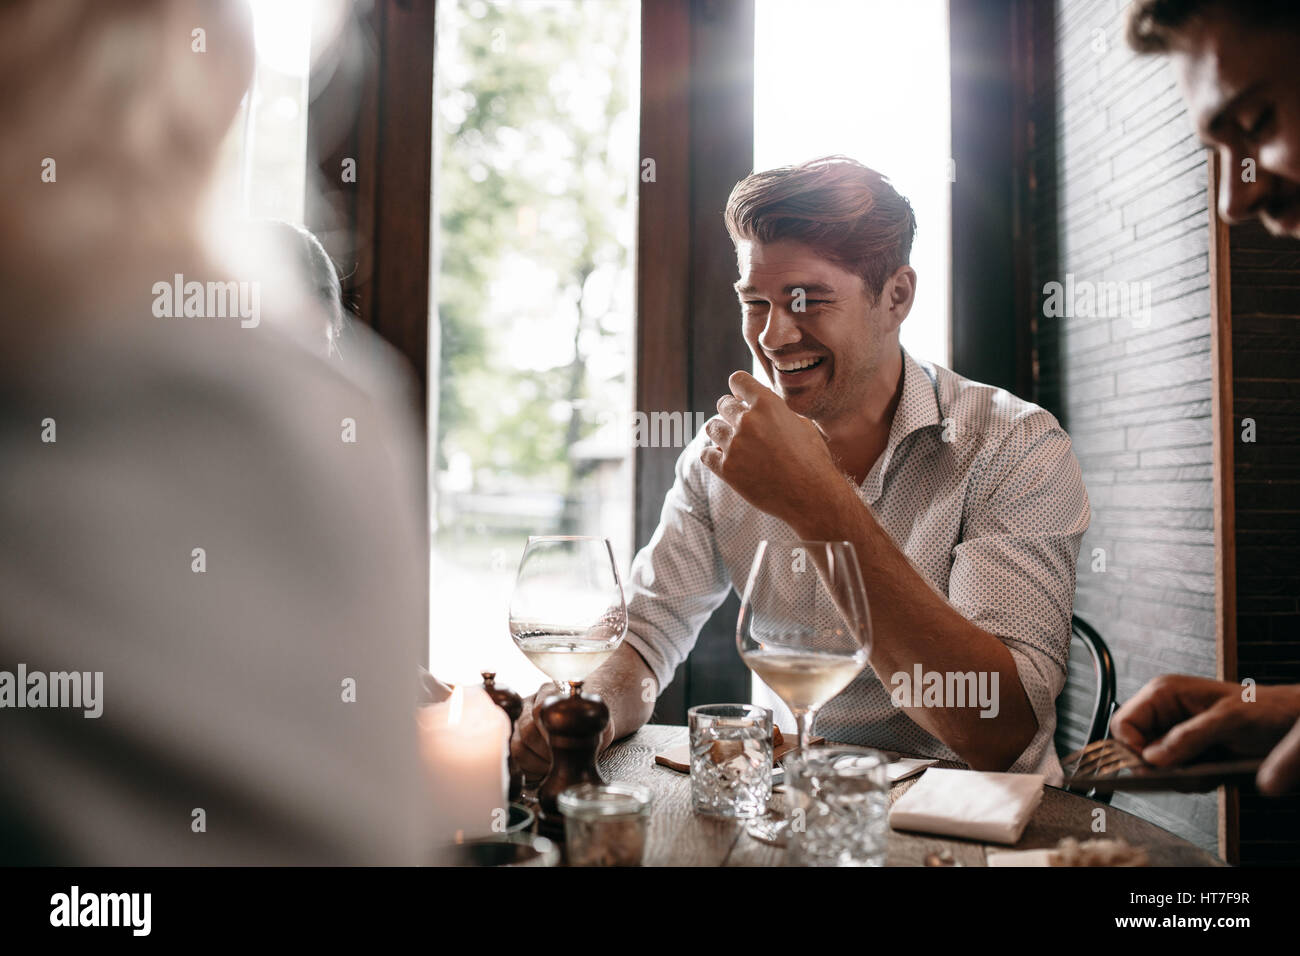 Indoor shot of young man smiling with friends at restaurant. Young people meeting at a cafe. Stock Photo